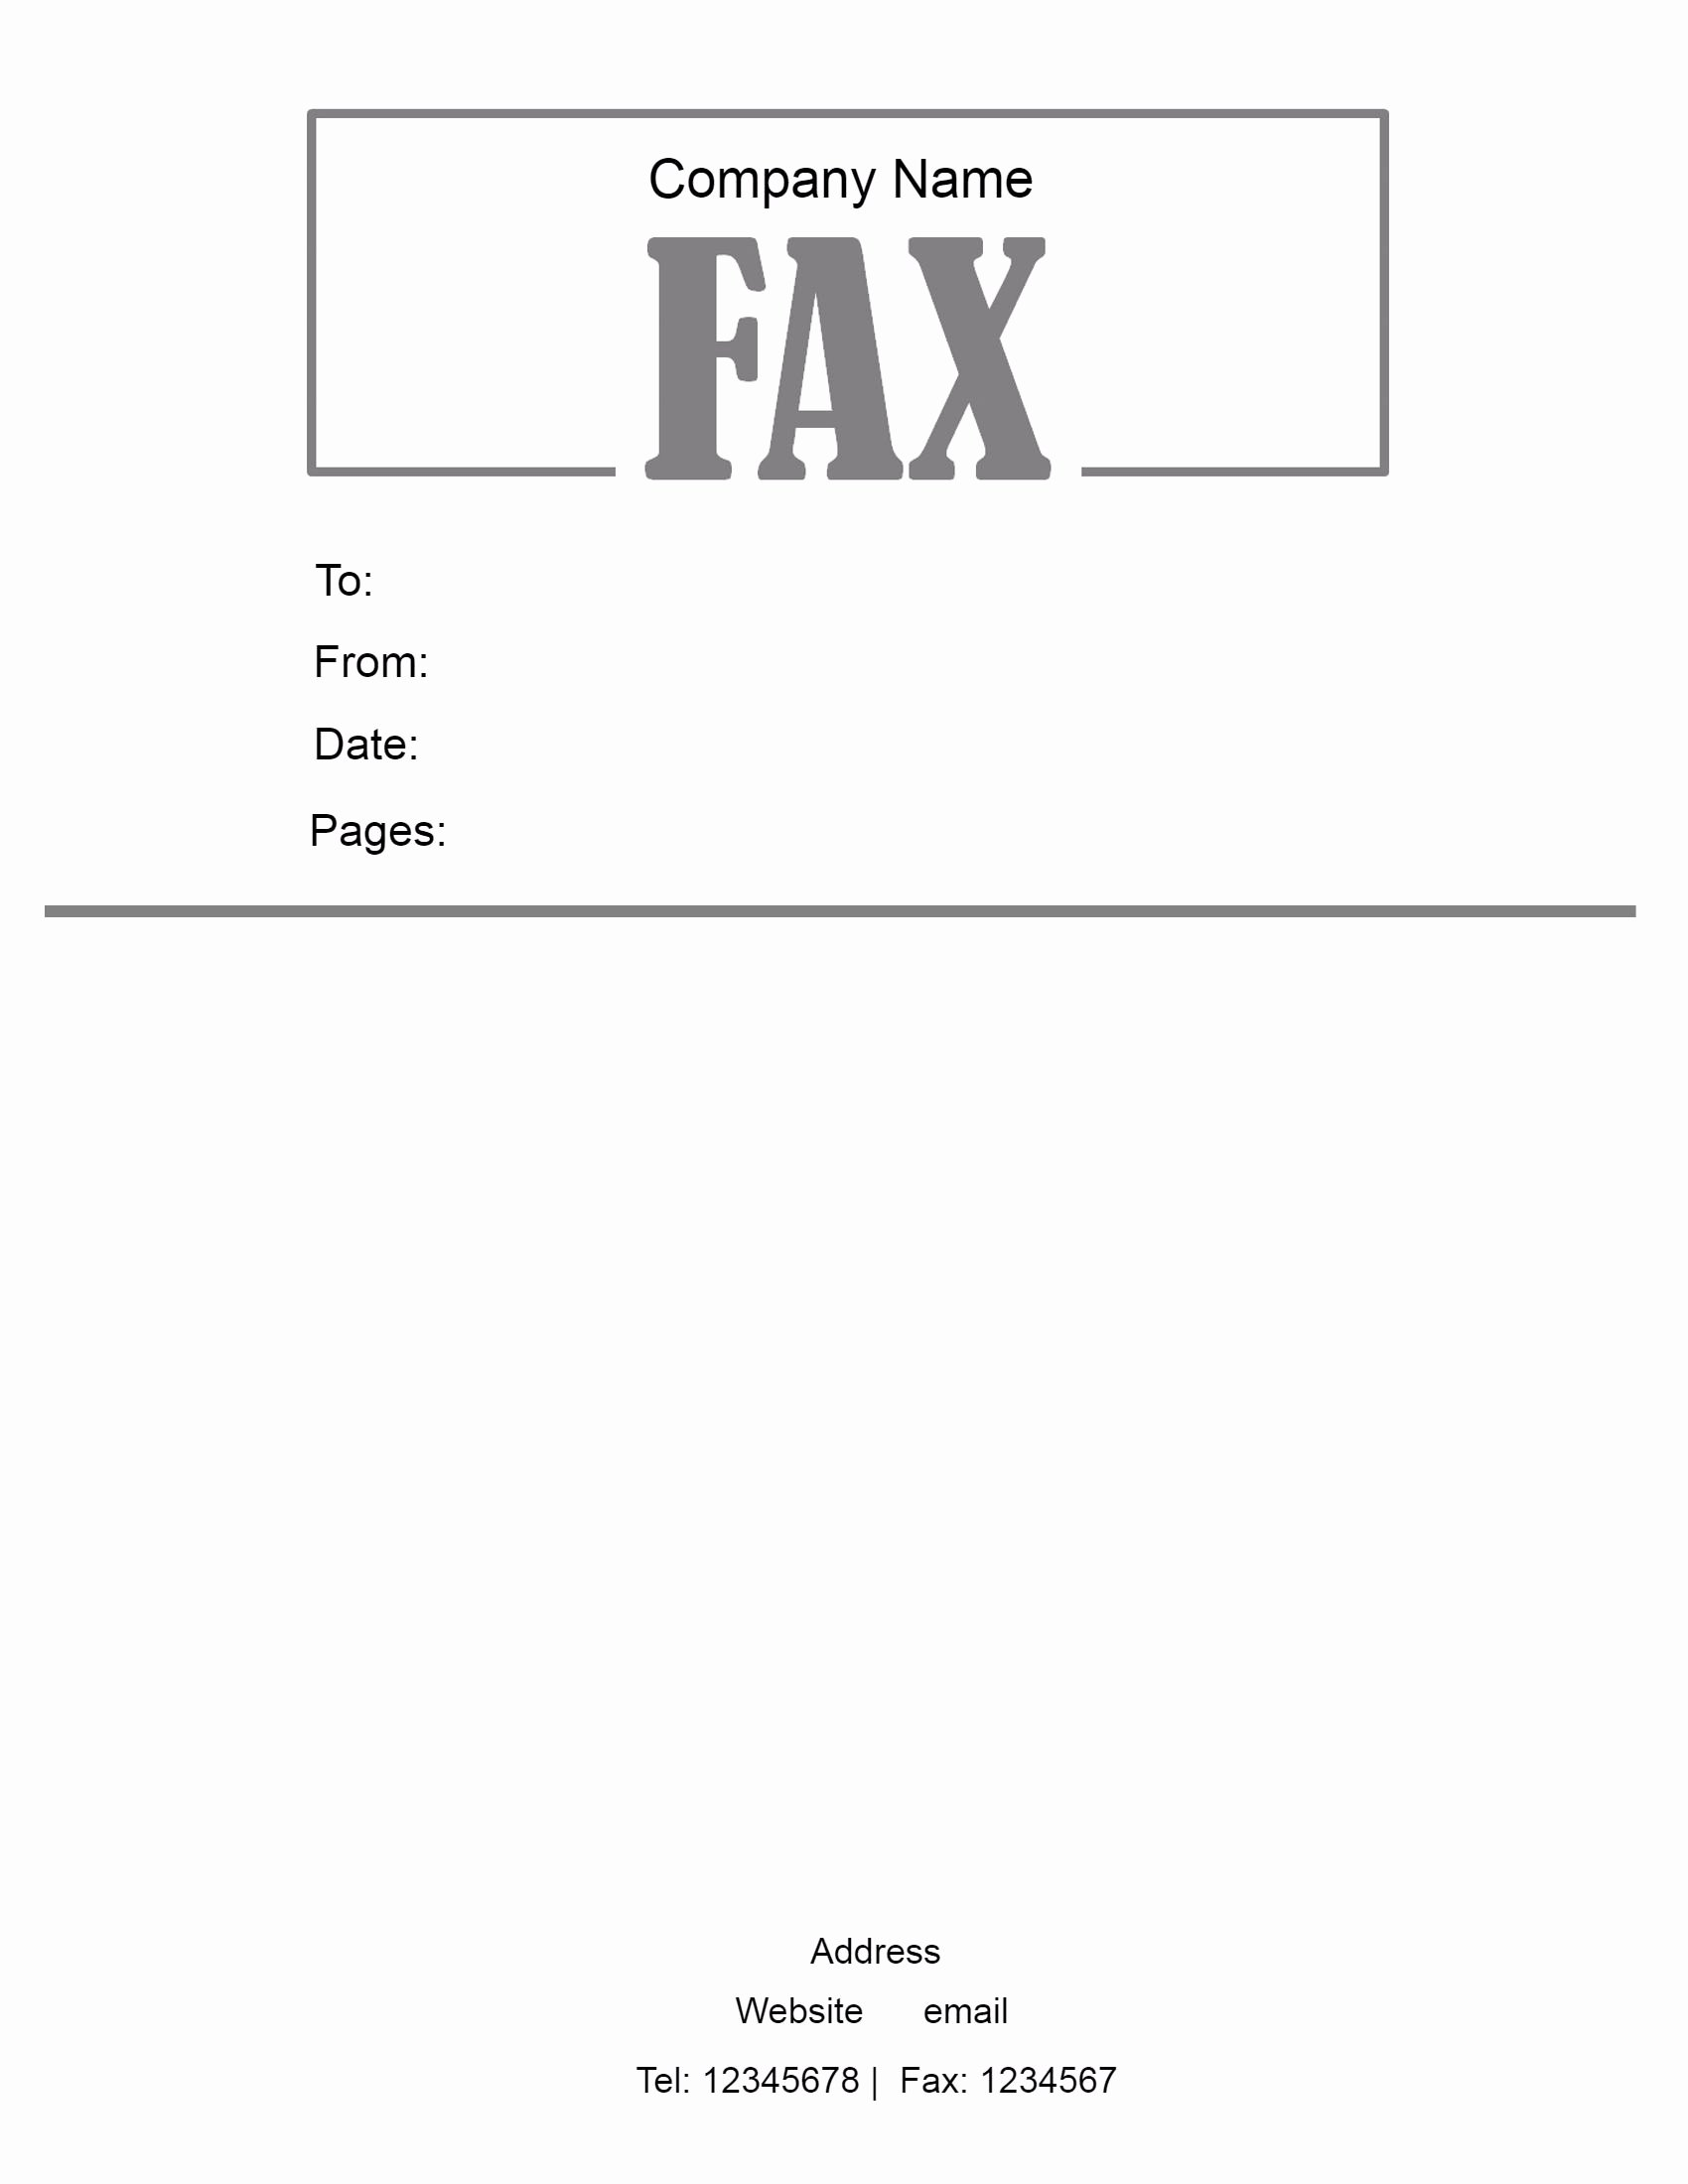 Fax Cover Page Template Luxury Free Fax Cover Letter Template